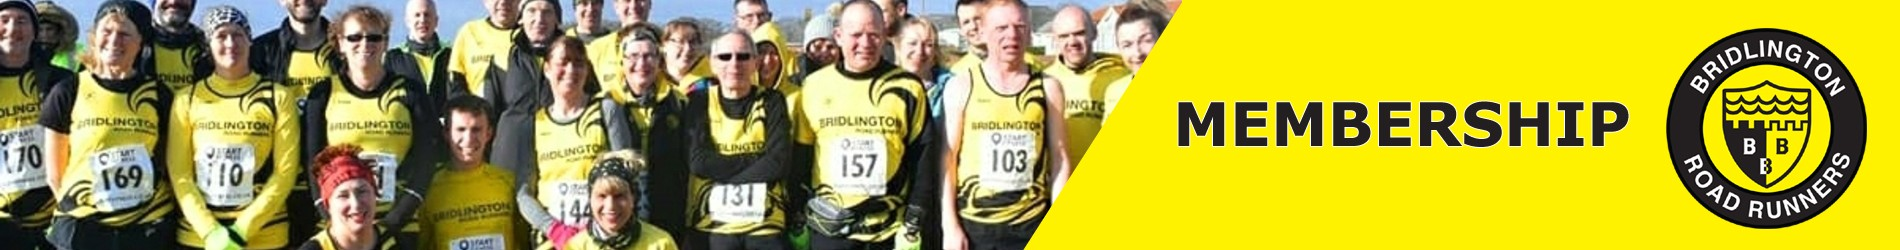 Bridlington Road Runners Season 2020-21 Membership